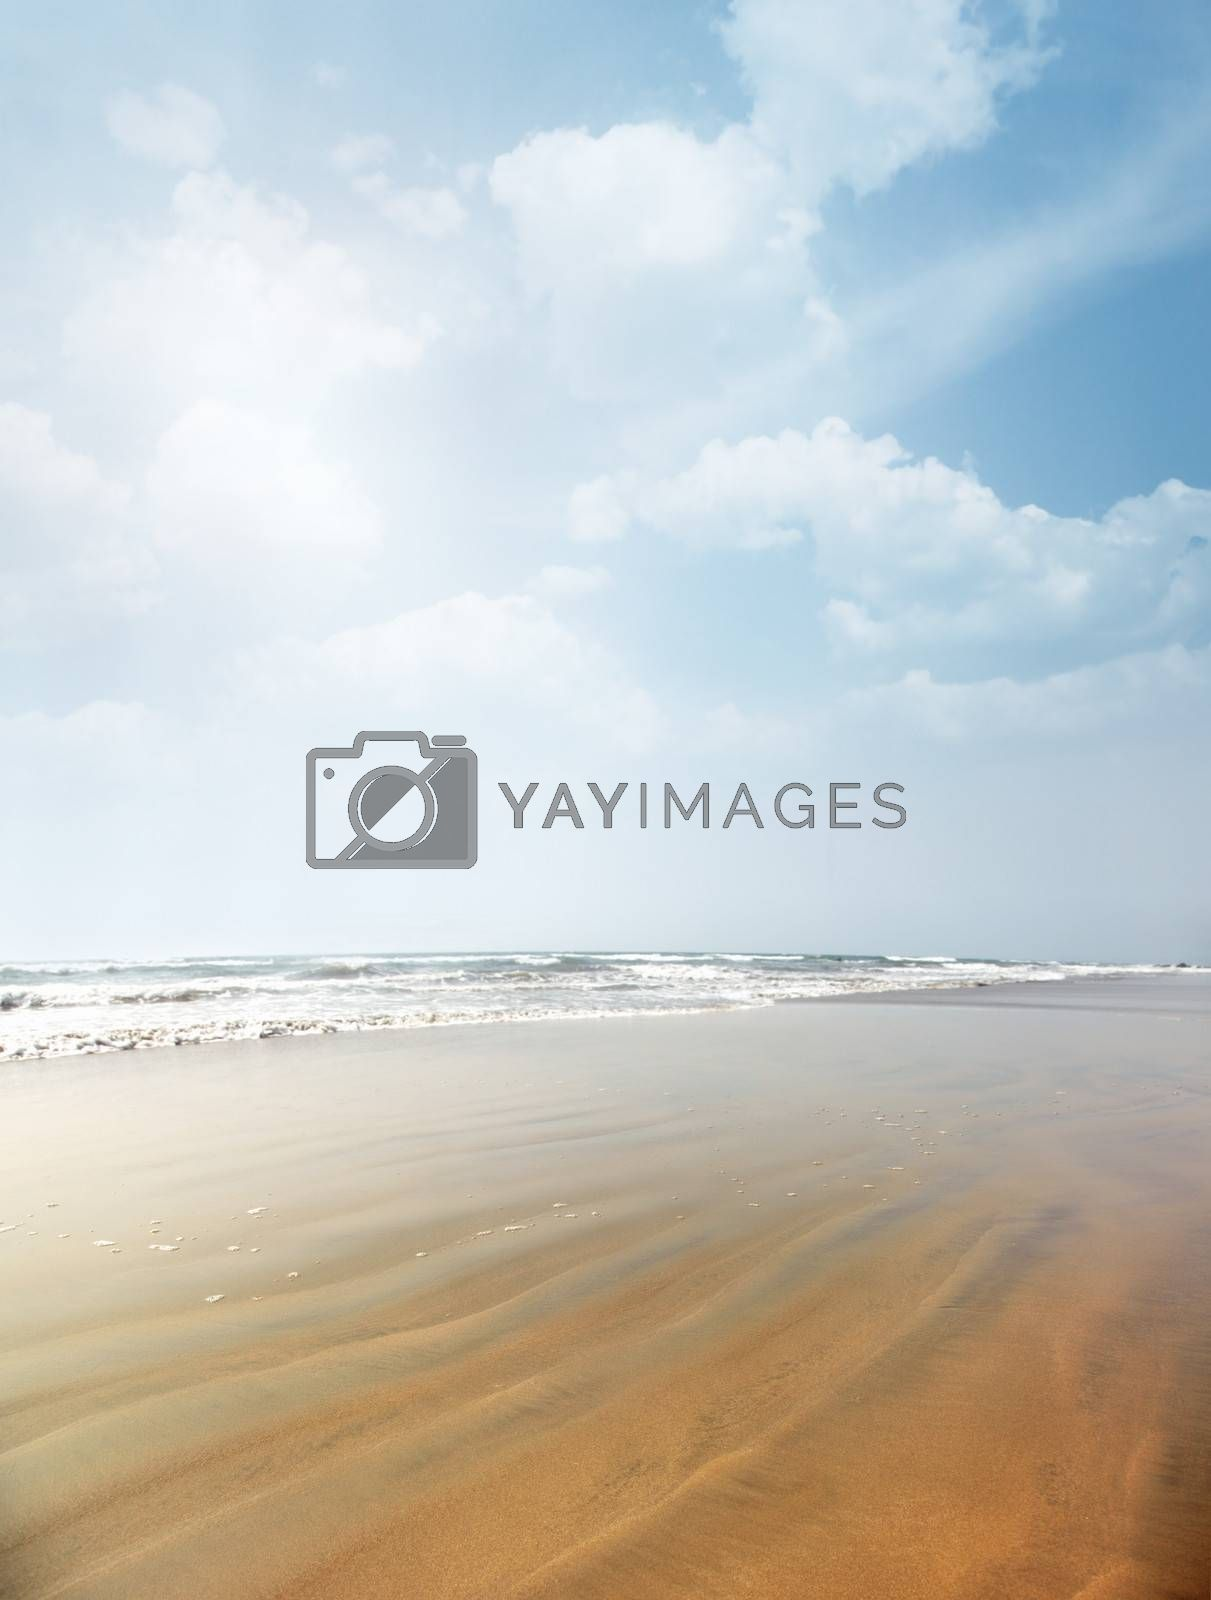 Vertical photo of the summer beach with rippled sand. Vibrant colors